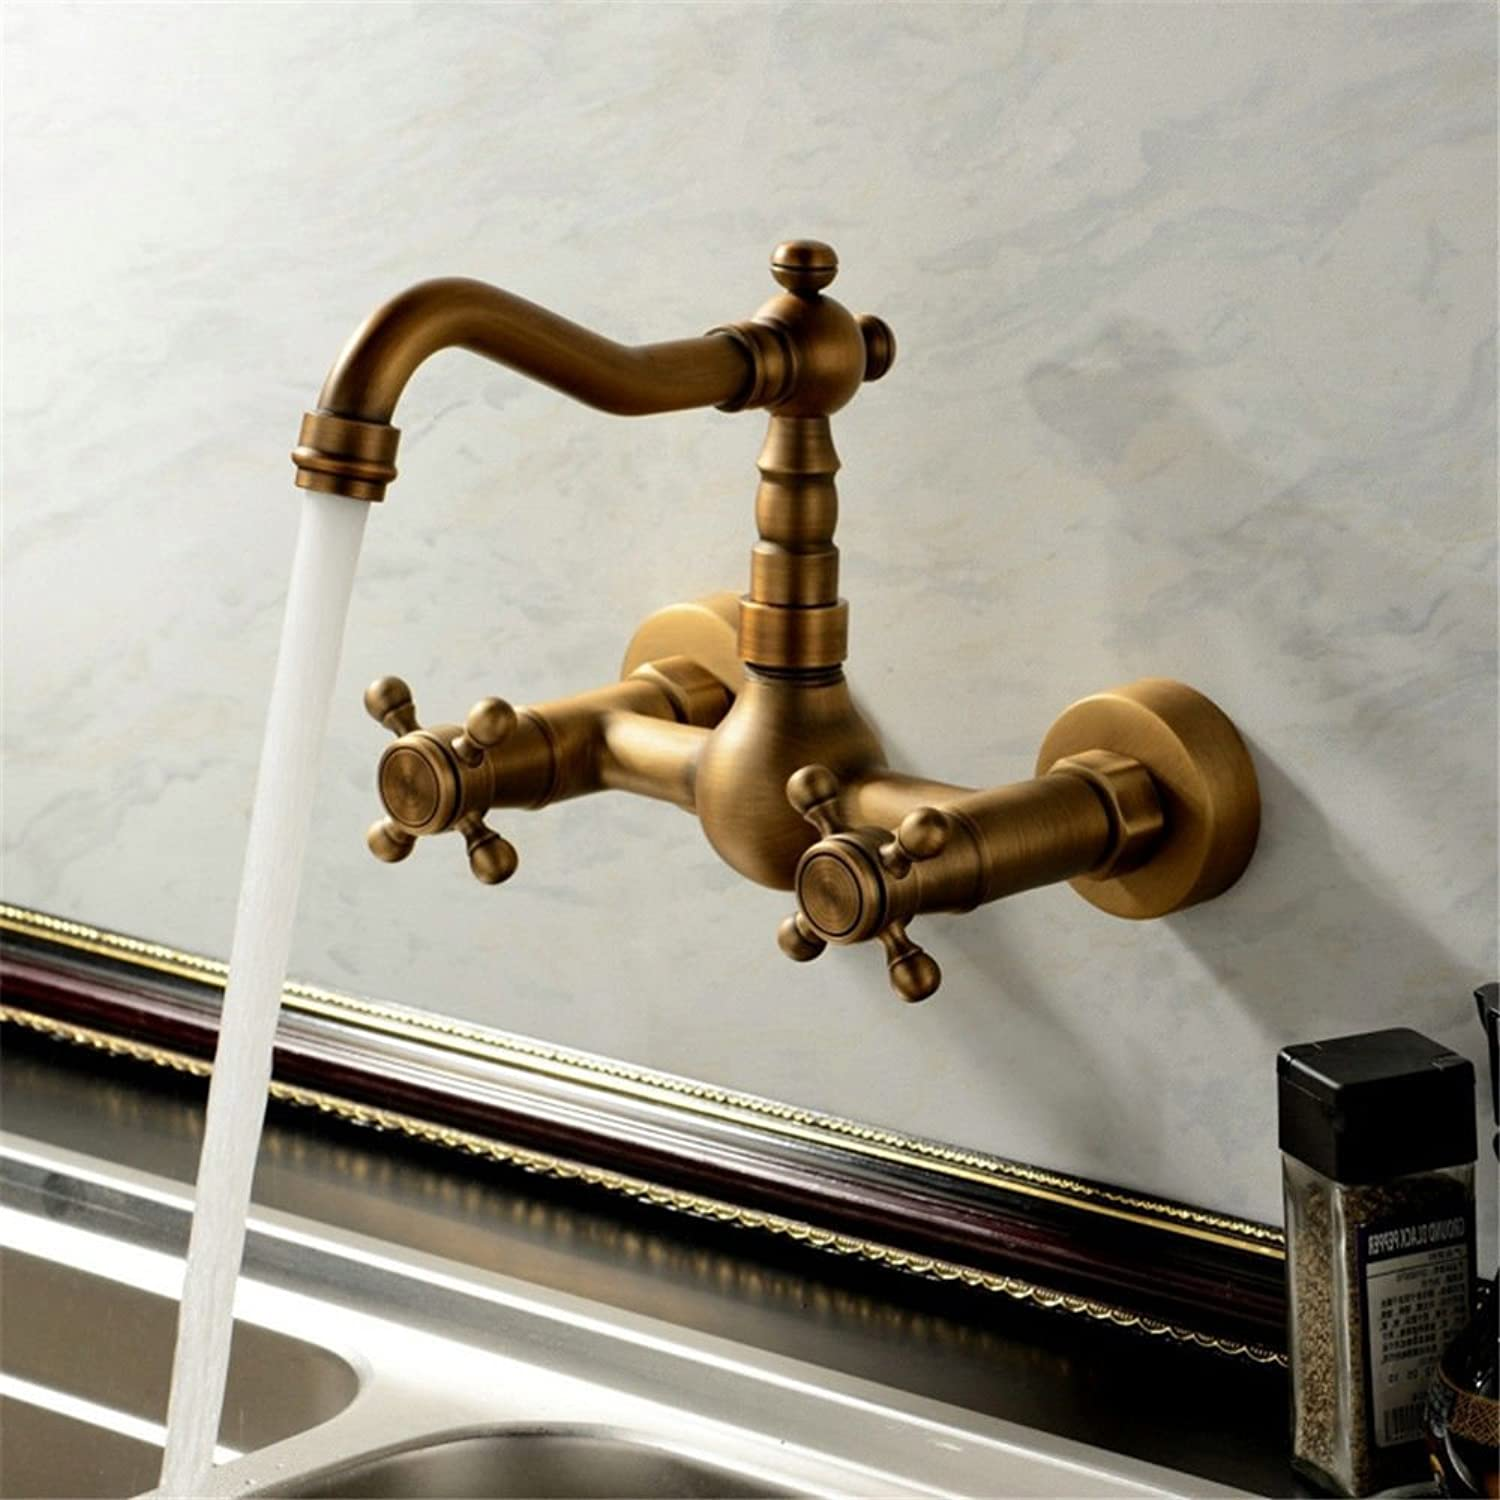 Gyps Faucet Waterfall for Cold and Hot Water Tap Bathroom Kitchen Tap 2 Hole in Wall Tap Water and Cold Water Antique Wall Brass Sink C, De